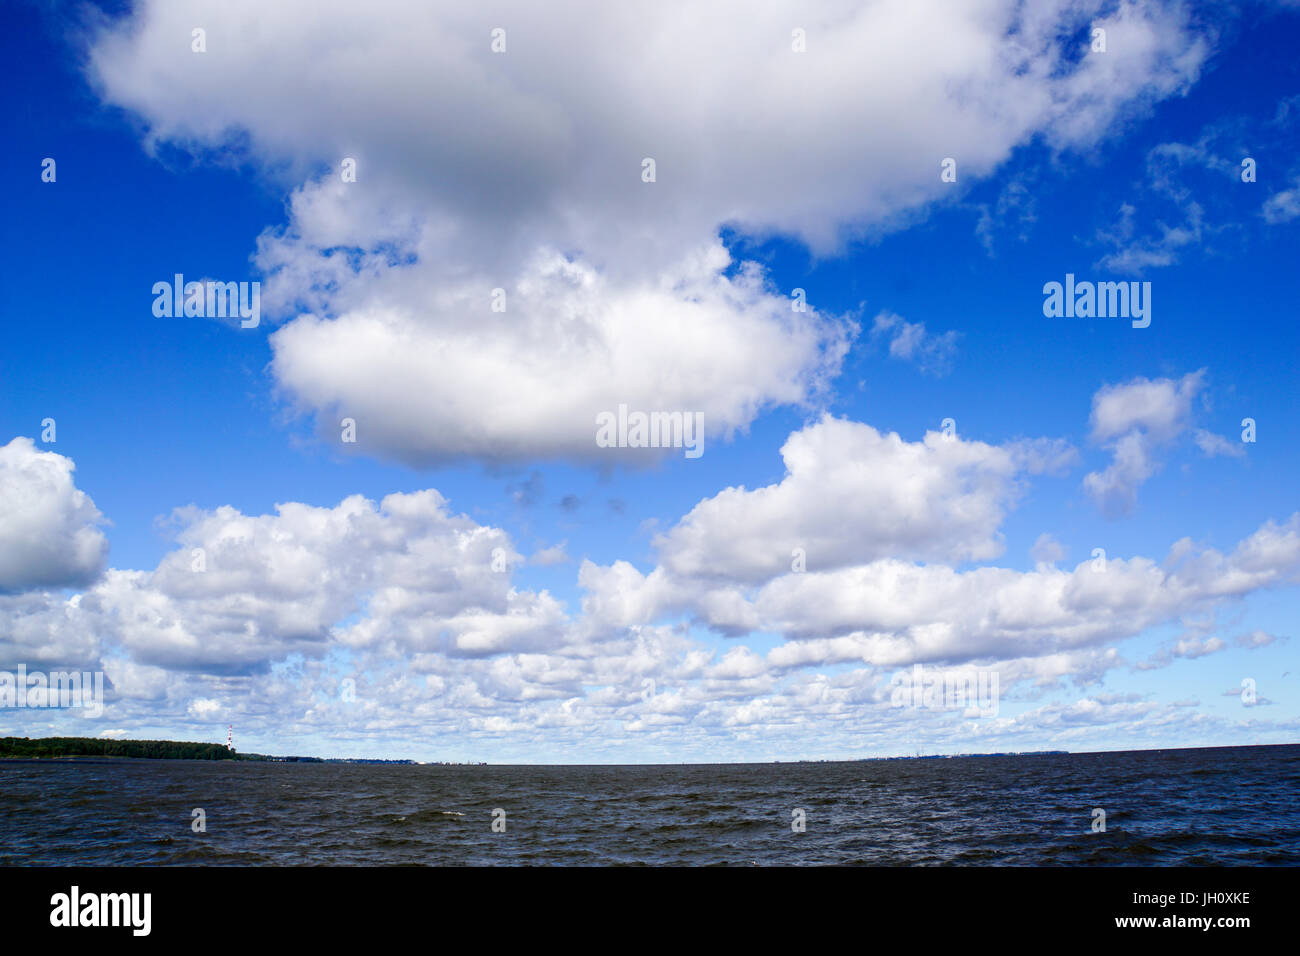 Dramatic cloudscape with anvil cloud. Photographed in Saint Petersburg, Russia - Stock Image